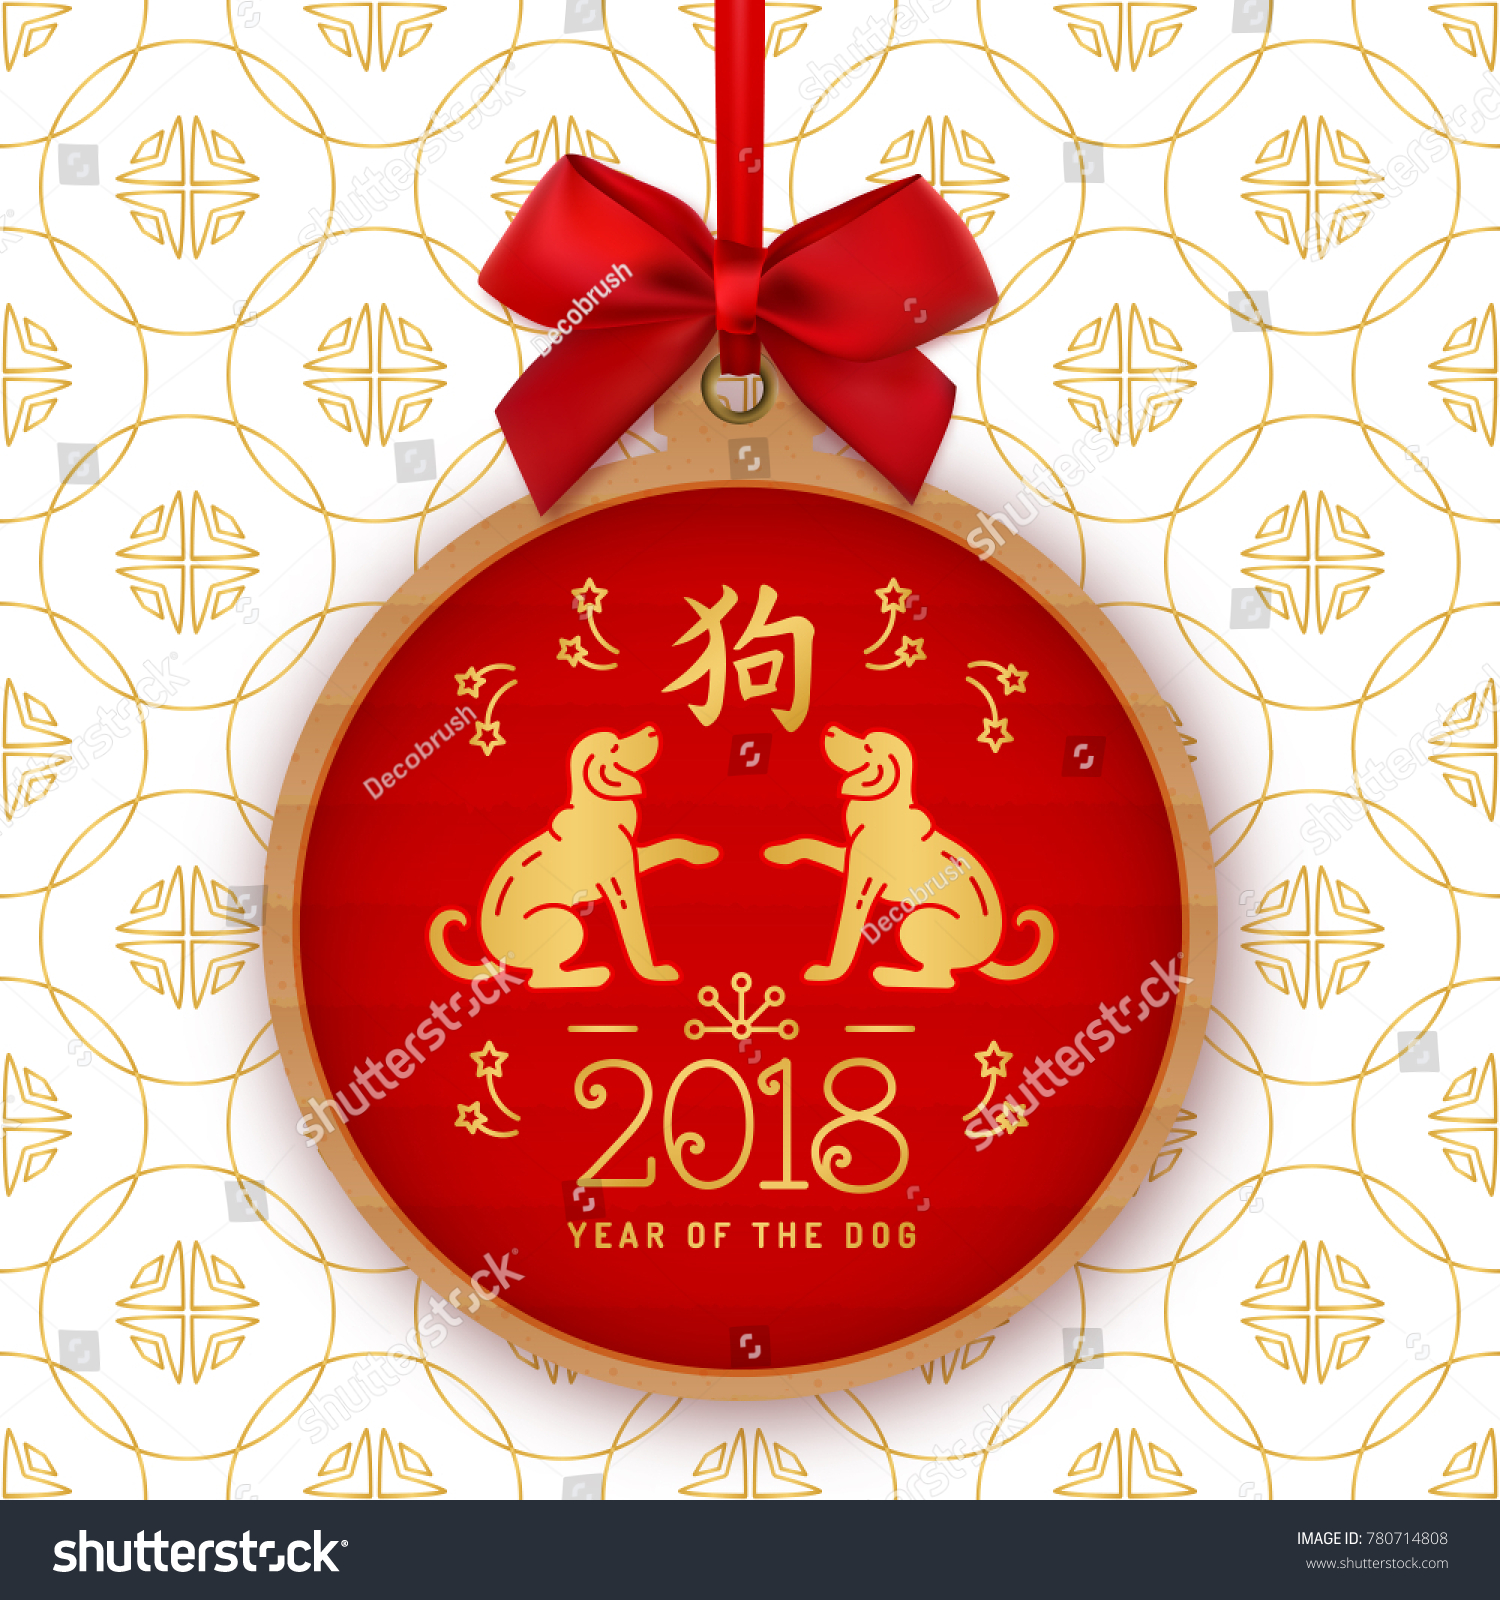 chinese new year greeting card year of the dog 2018 round banner with red ribbon